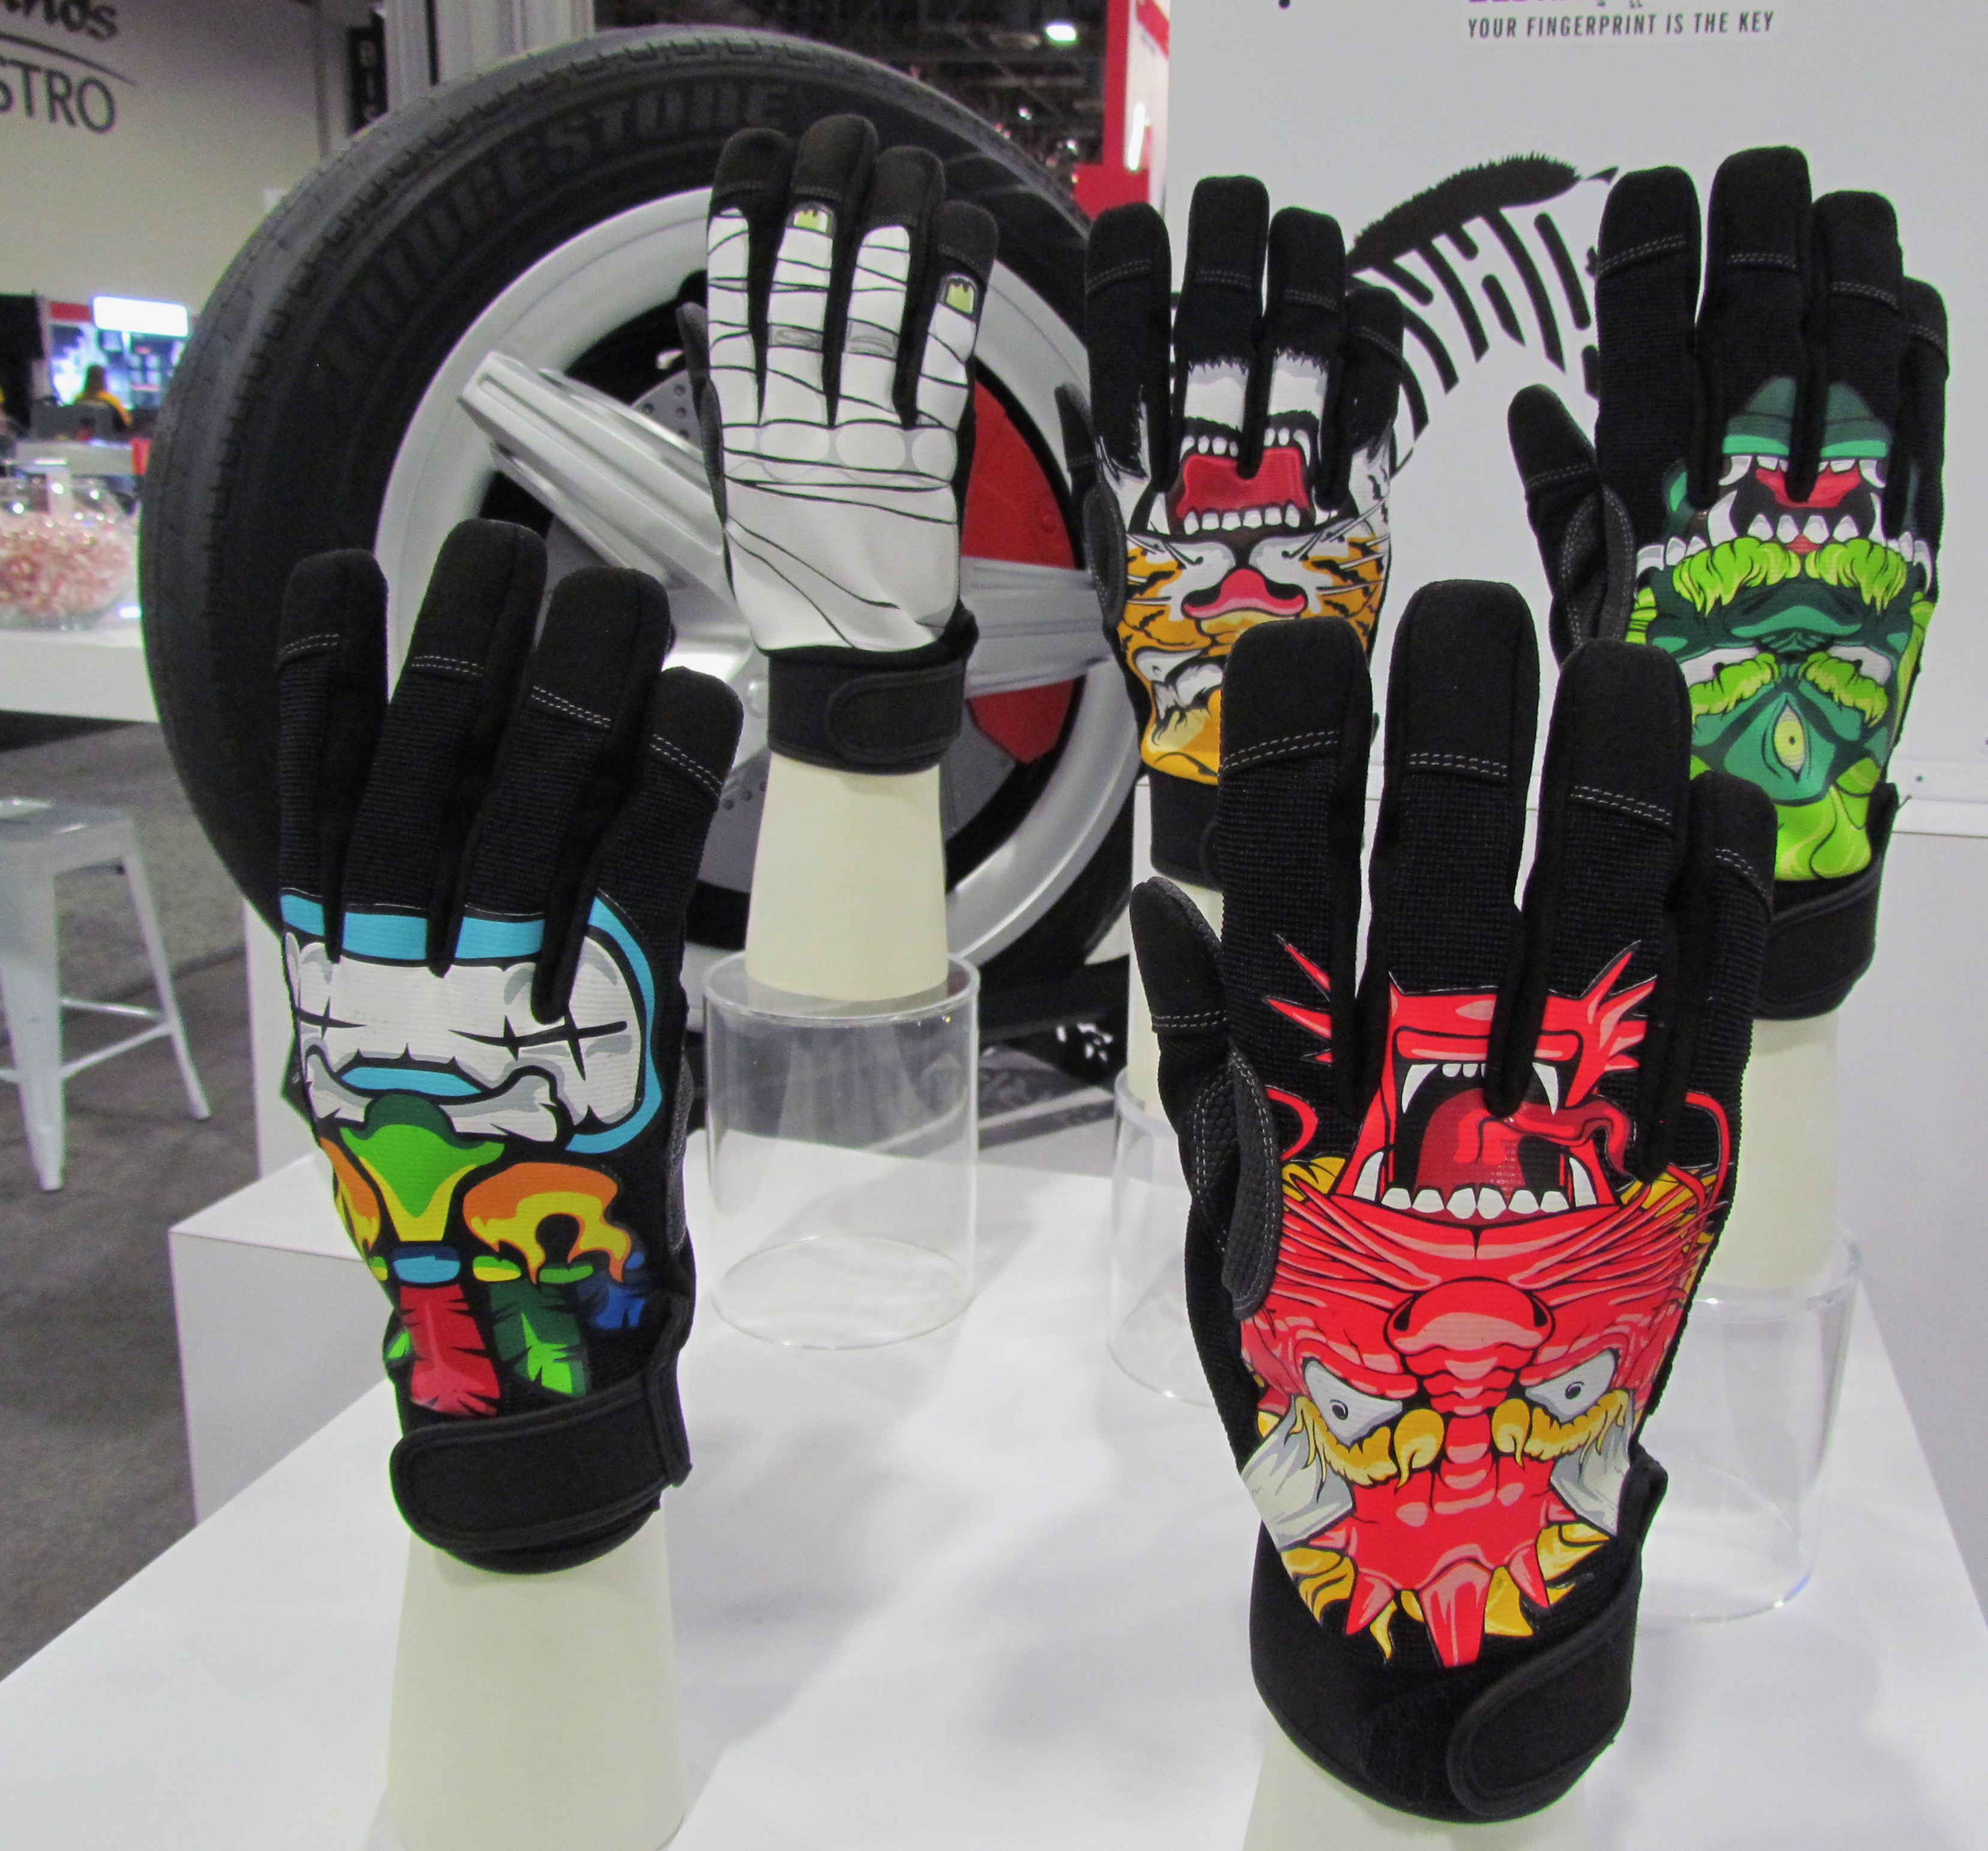 Barbie, Steering wheel covers for grown-up Barbies are just the start, ClassicCars.com Journal